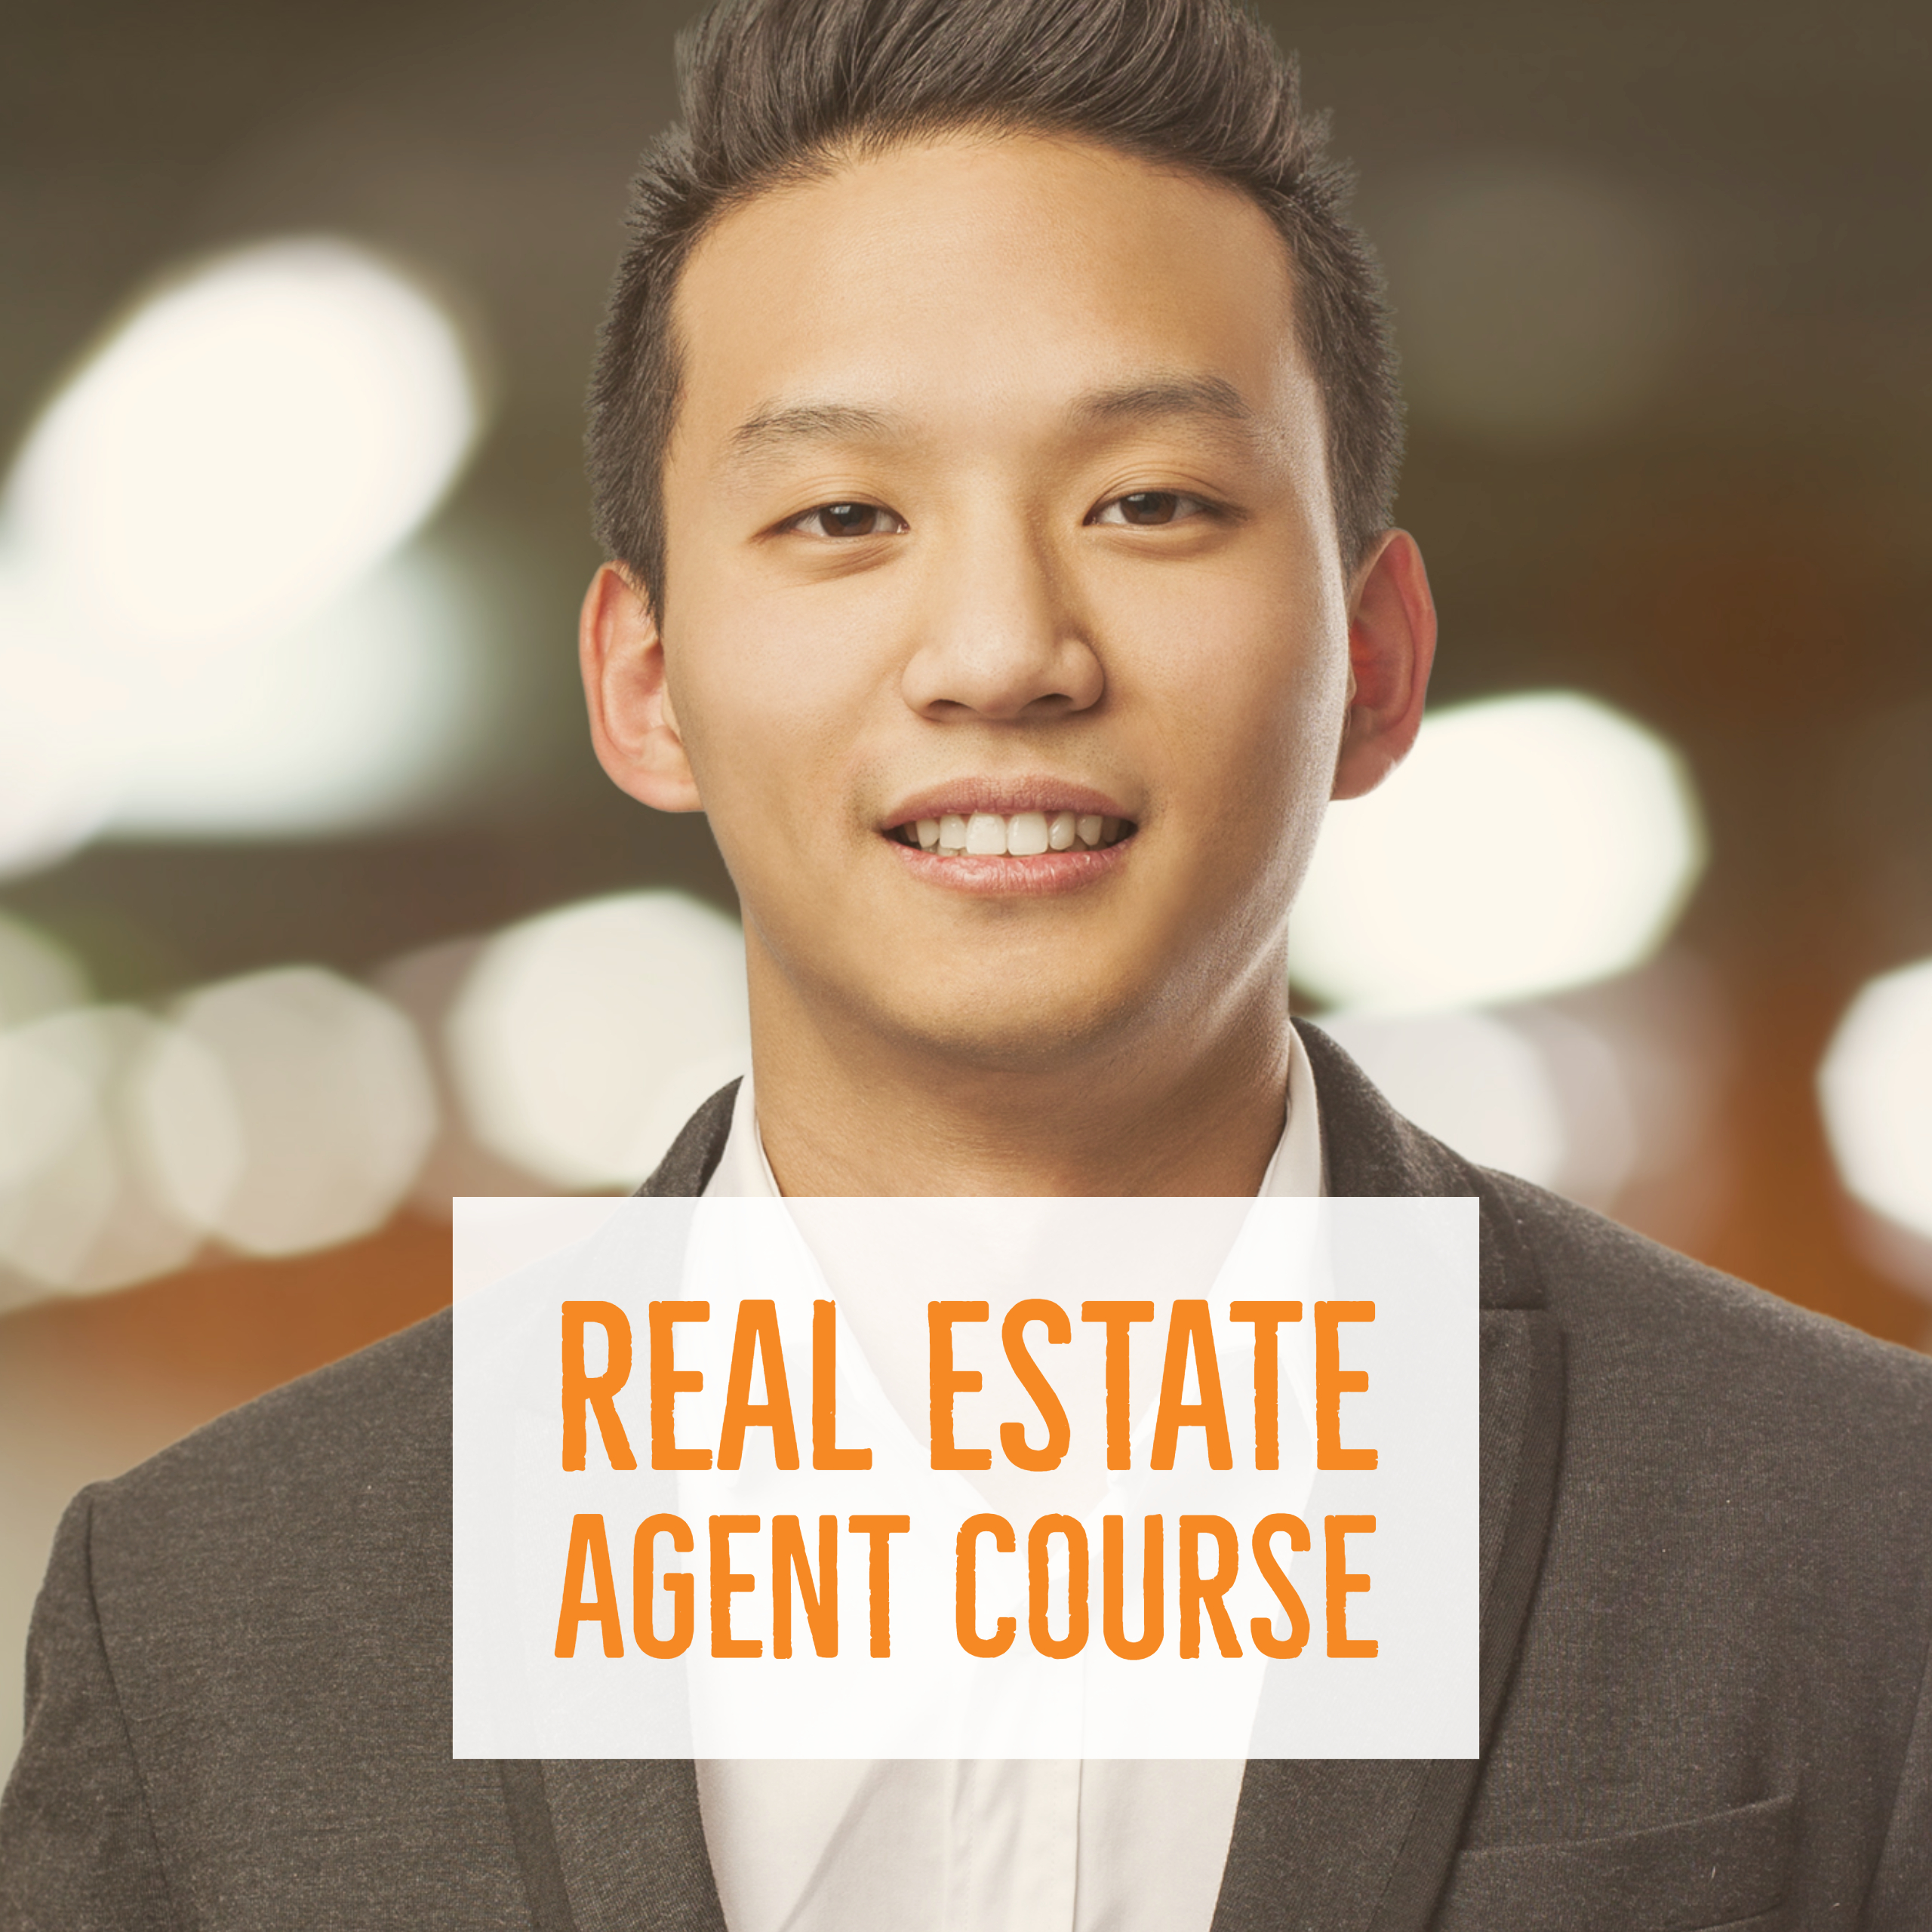 Real Estate Agent Course Best Real Estate school los angeles best real estate training los angeles best real estate course collegeofrealestate CORE 3